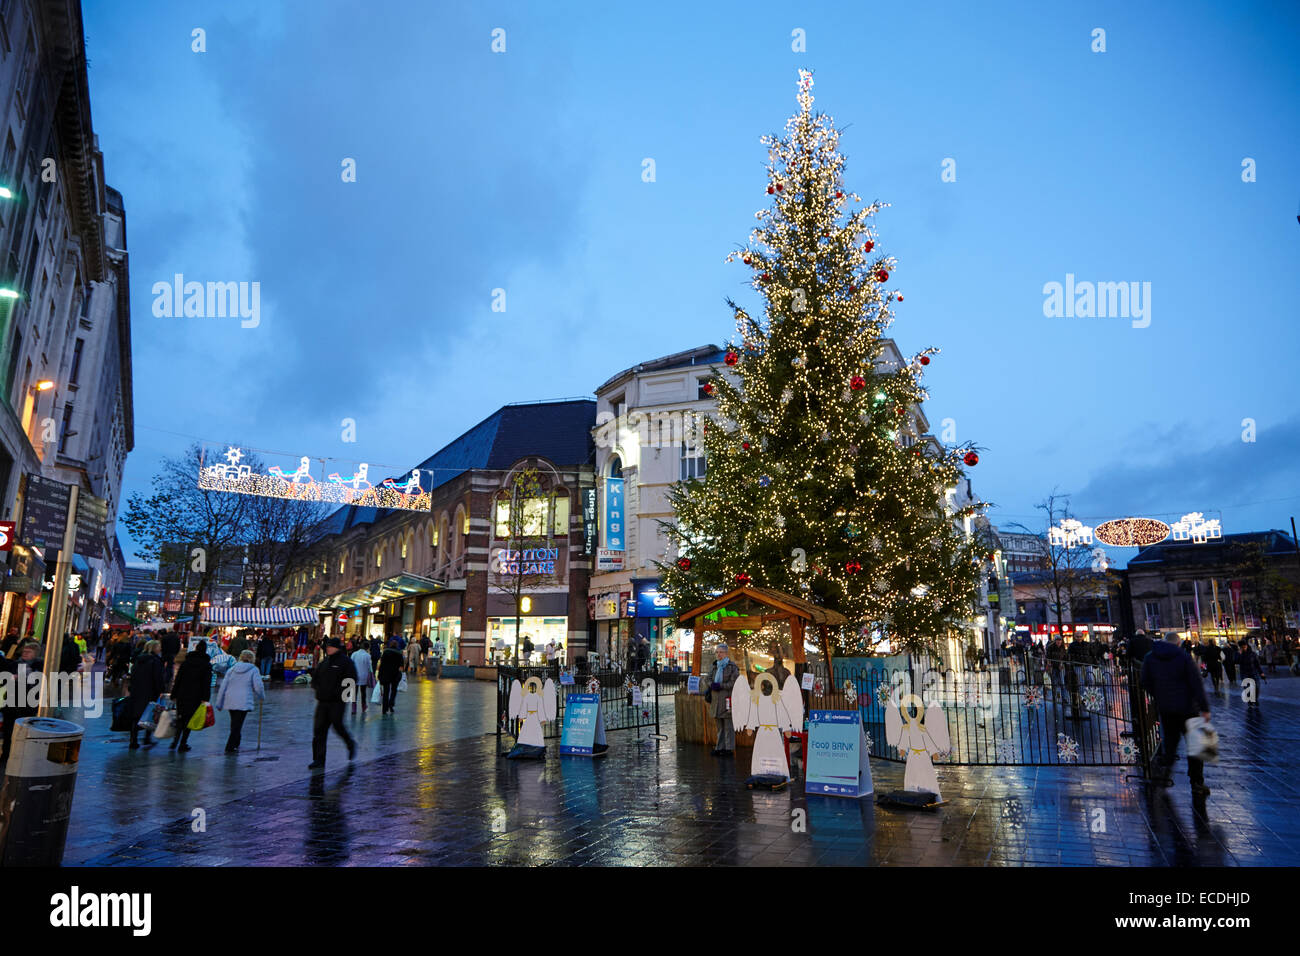 Liverpool city centre xmas tree and lights on christmas shopping evening church street UK - Stock Image